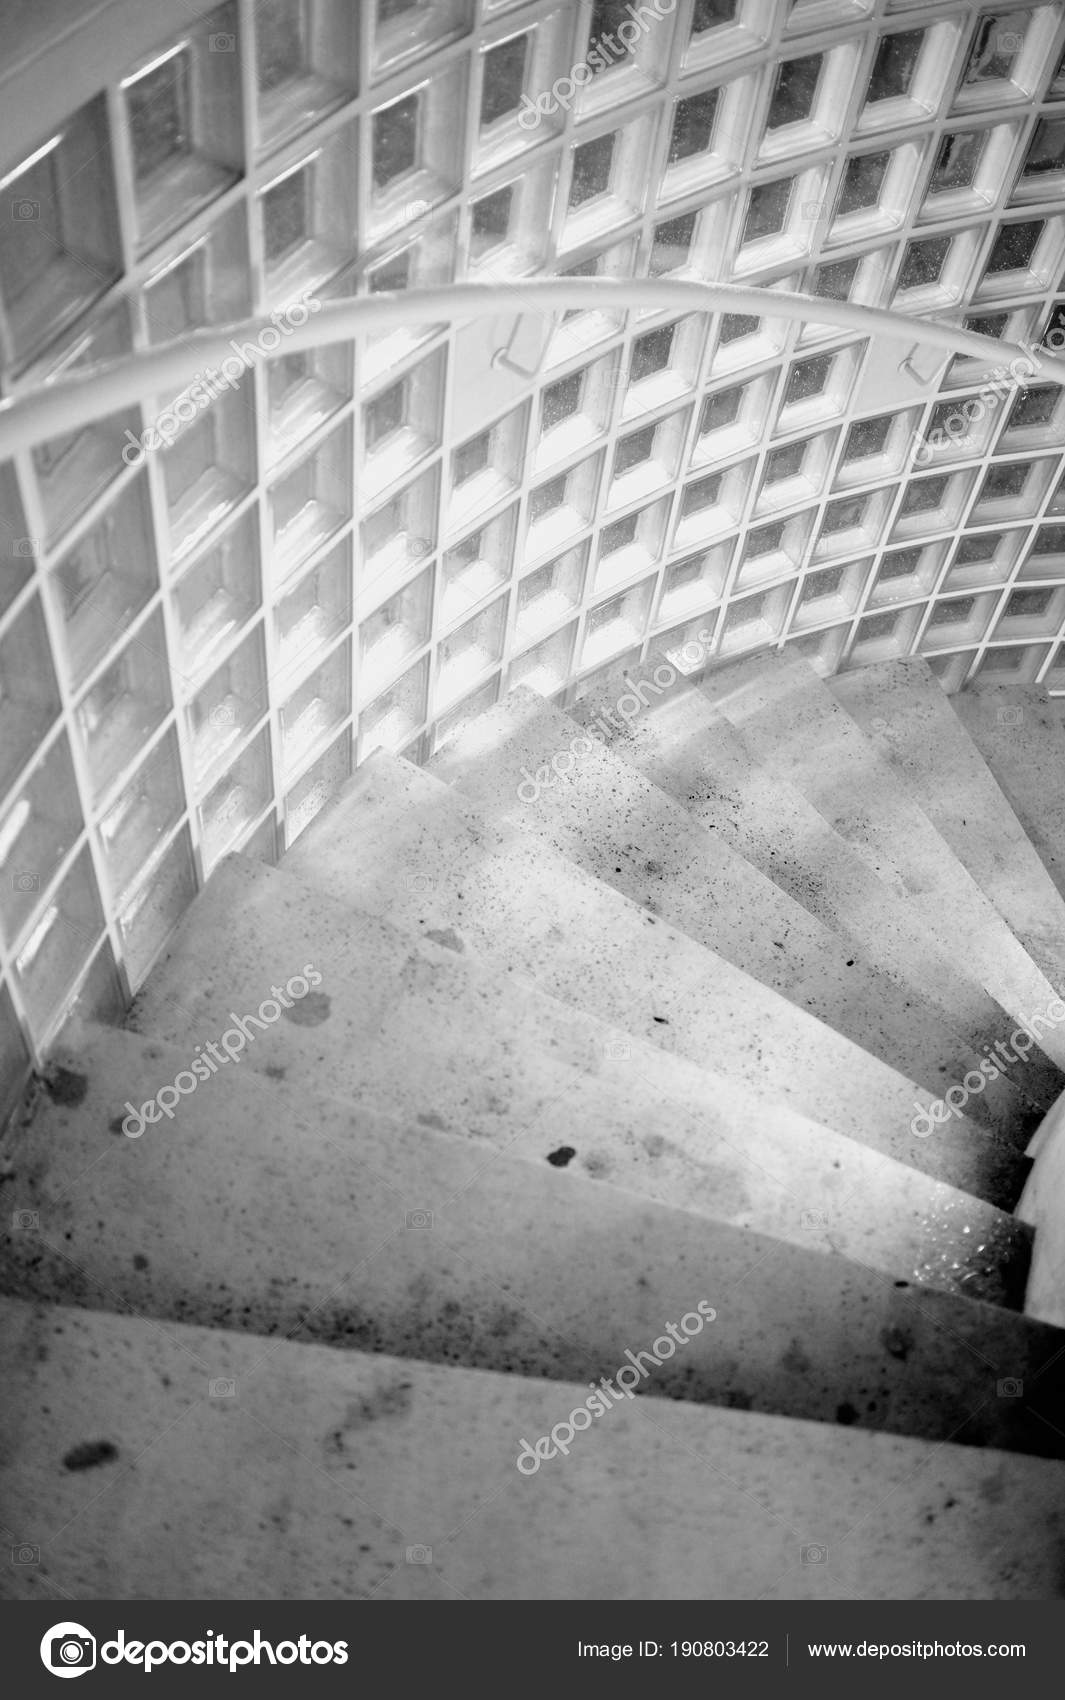 Marble Stairs Black White Going Stairs Underground Parking Lot Stock Photo C Editor77 190803422